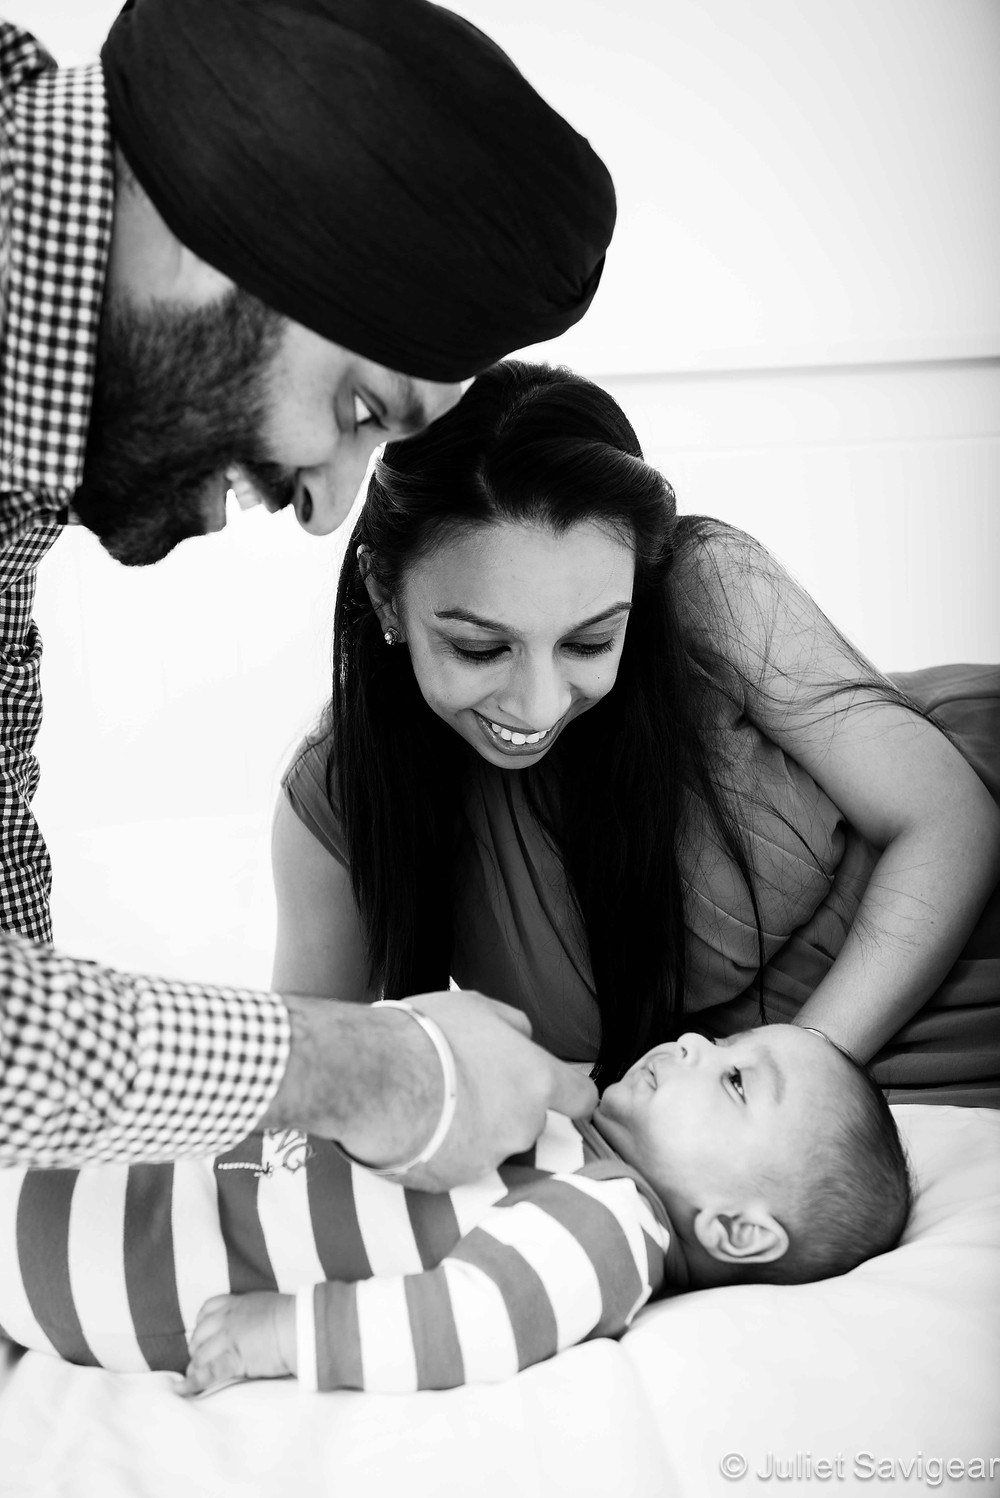 Our Baby - Baby & Family Portrait Photography, Croydon